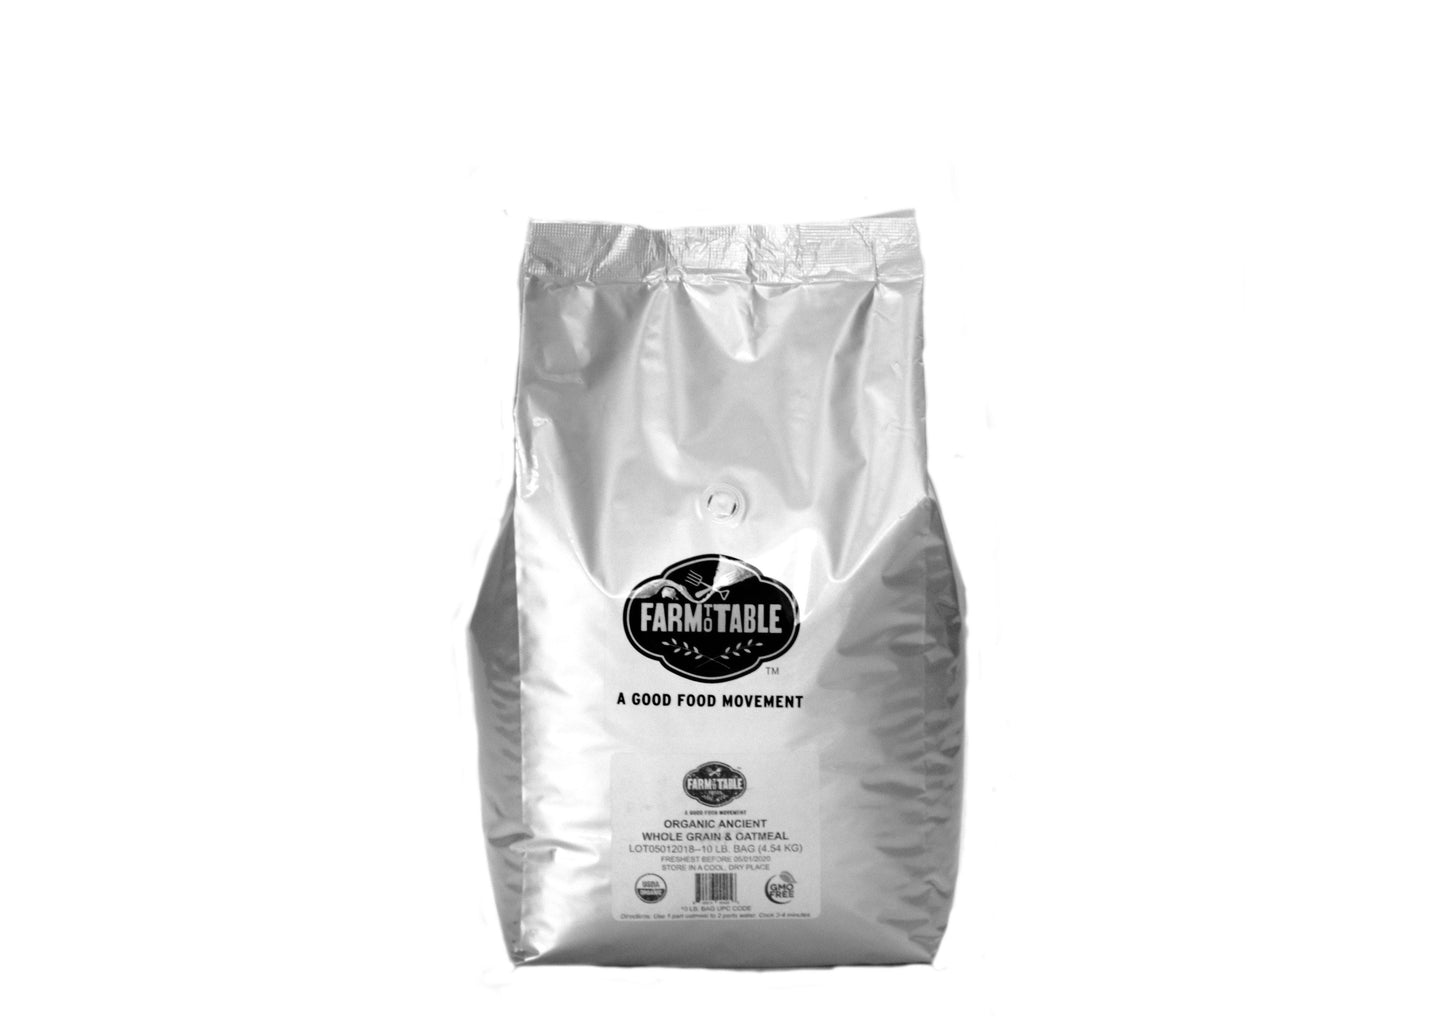 Organic Ancient Super Grain Whole Grain & Oatmeal-10 lb. cafe bag - Farm to Table Foods